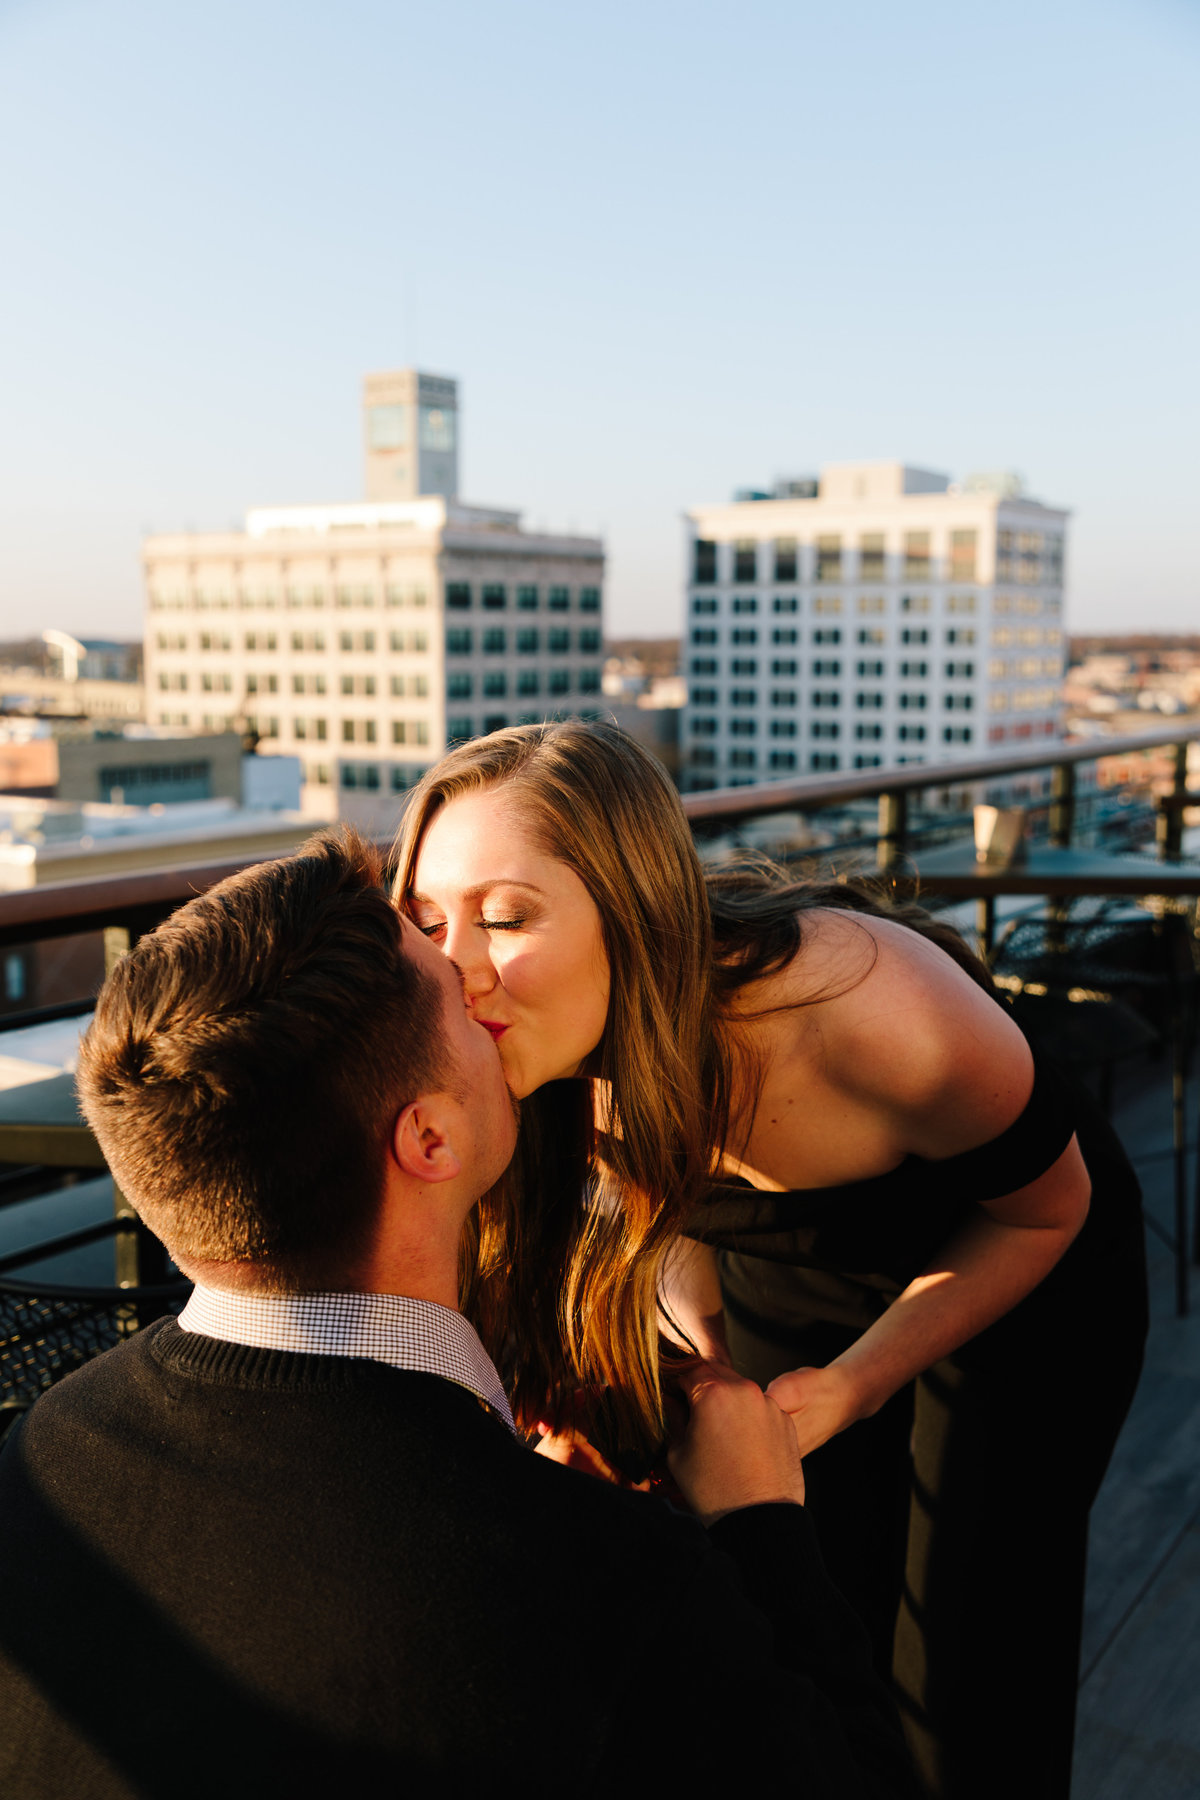 Kansas-City-Wedding-Photographer-Natalie-Nichole-Photography-064